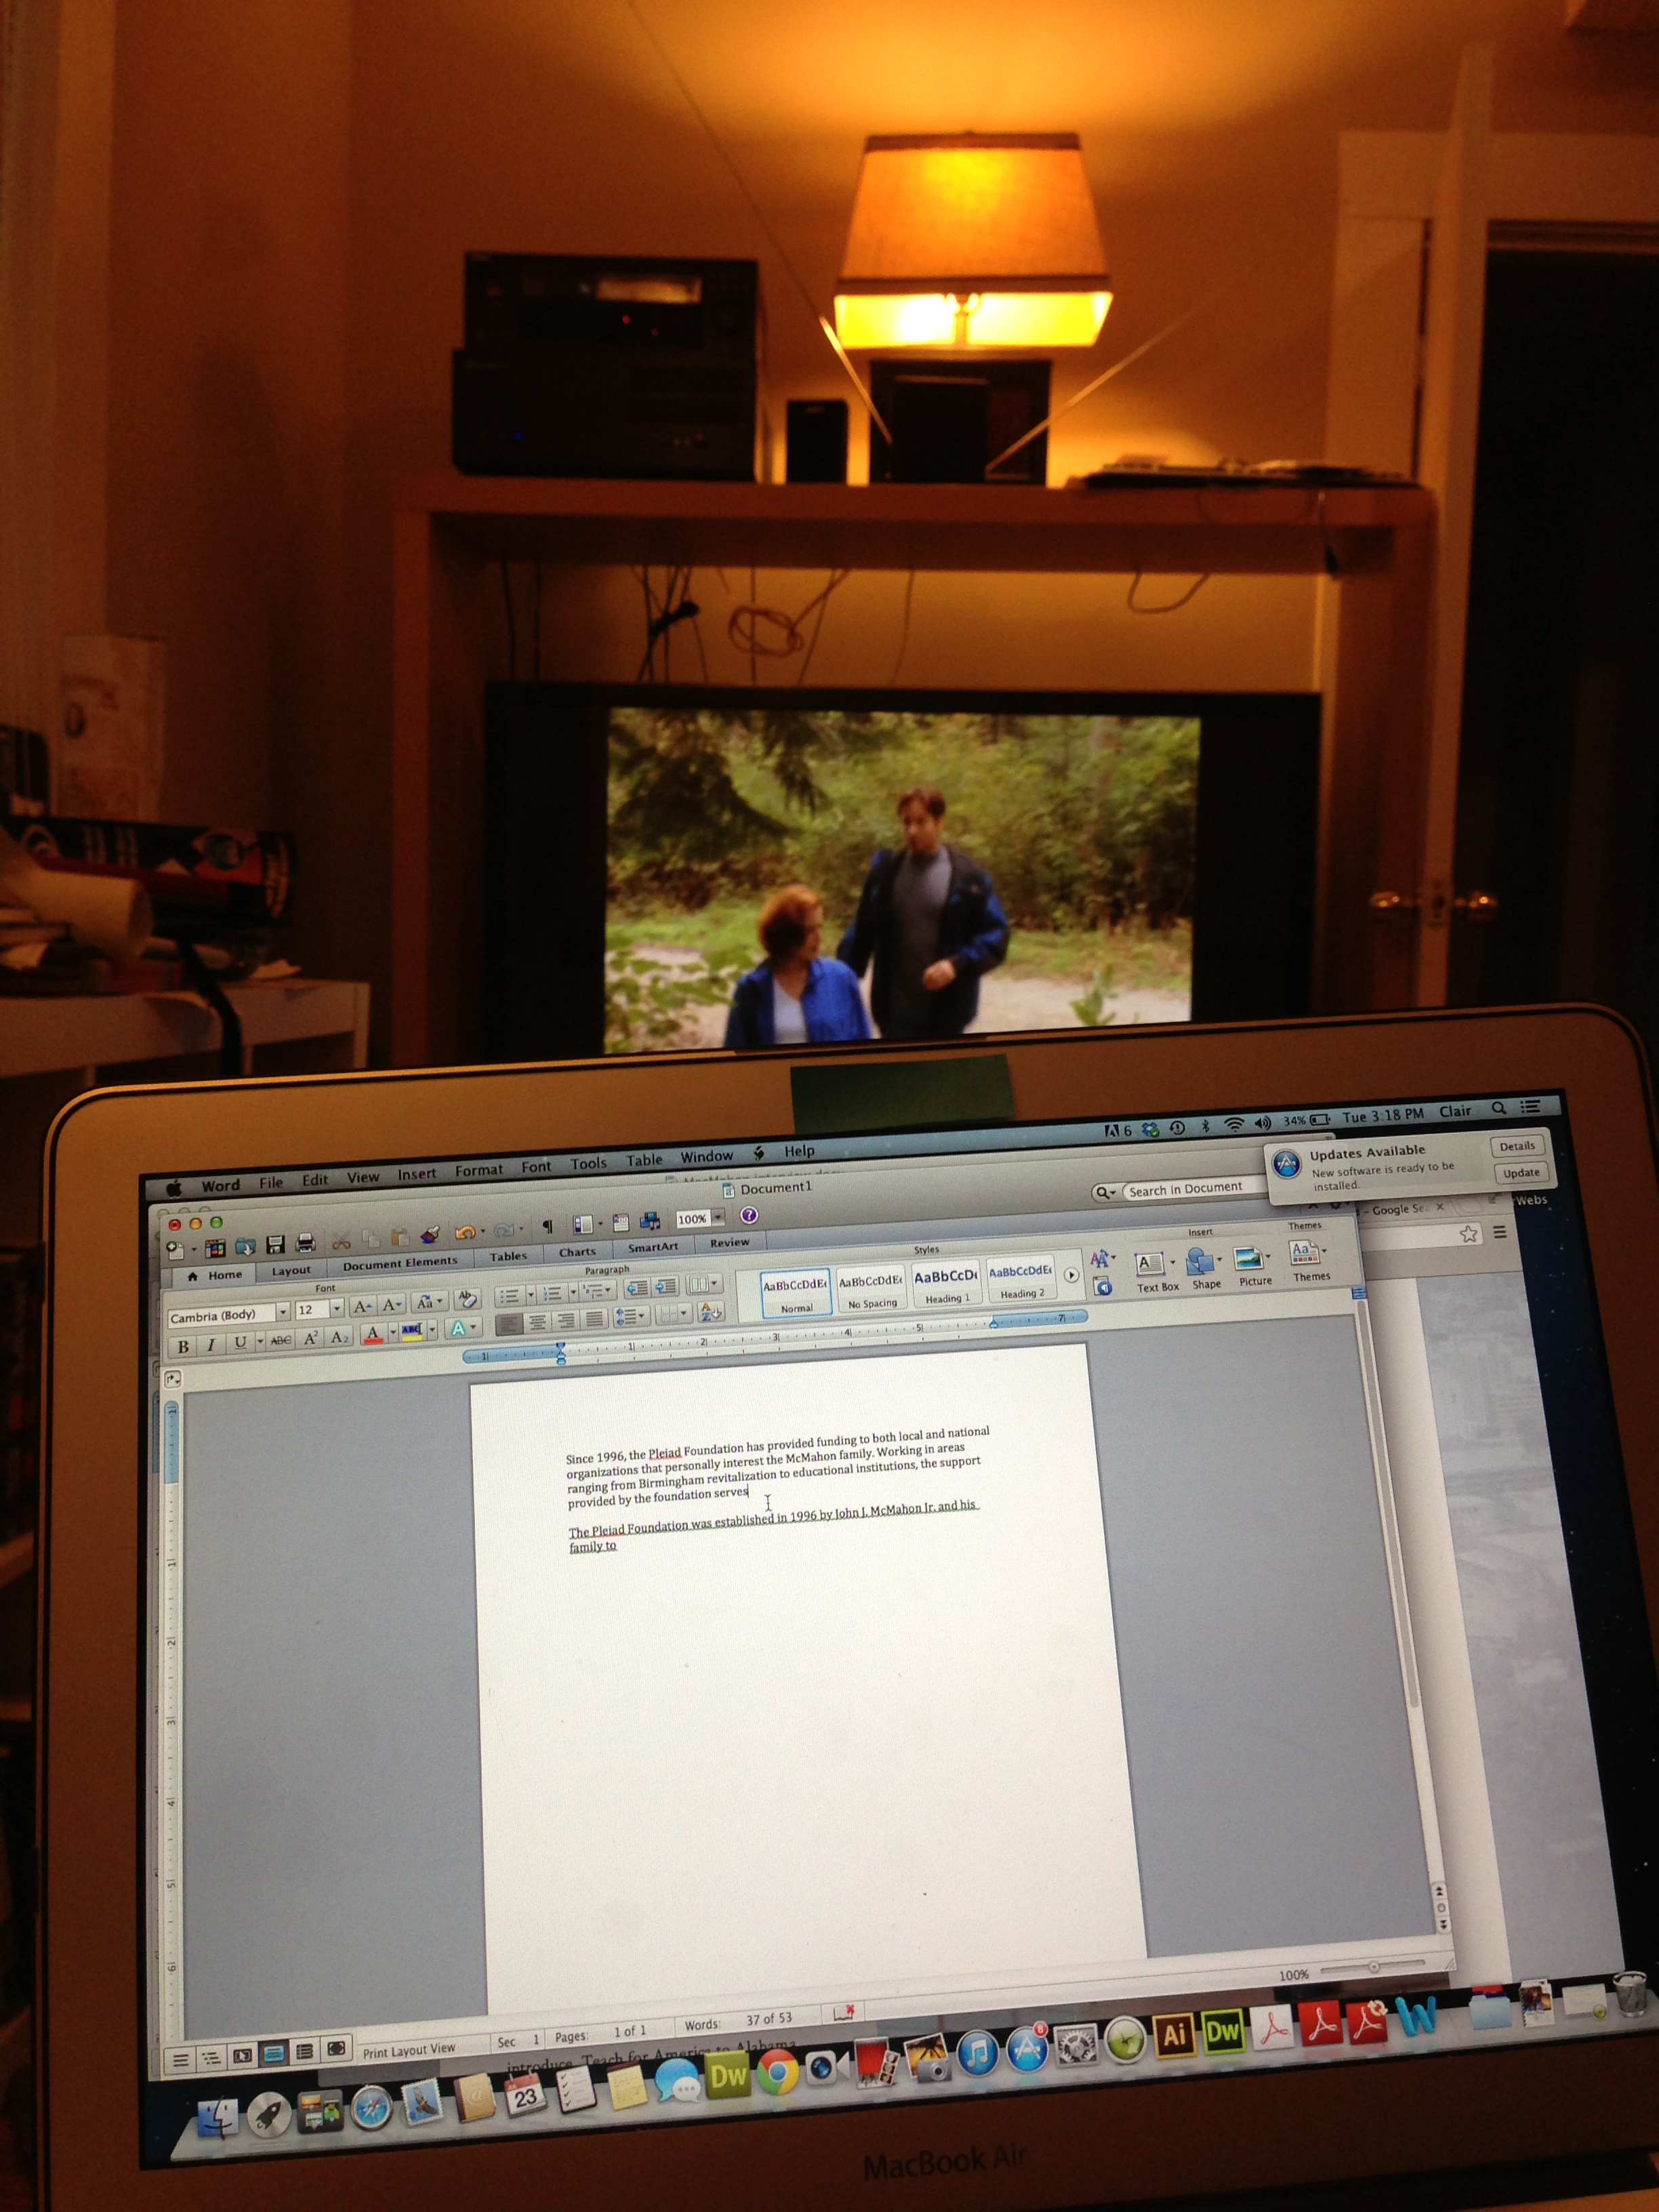 I write a lot...and watch trashy TV.